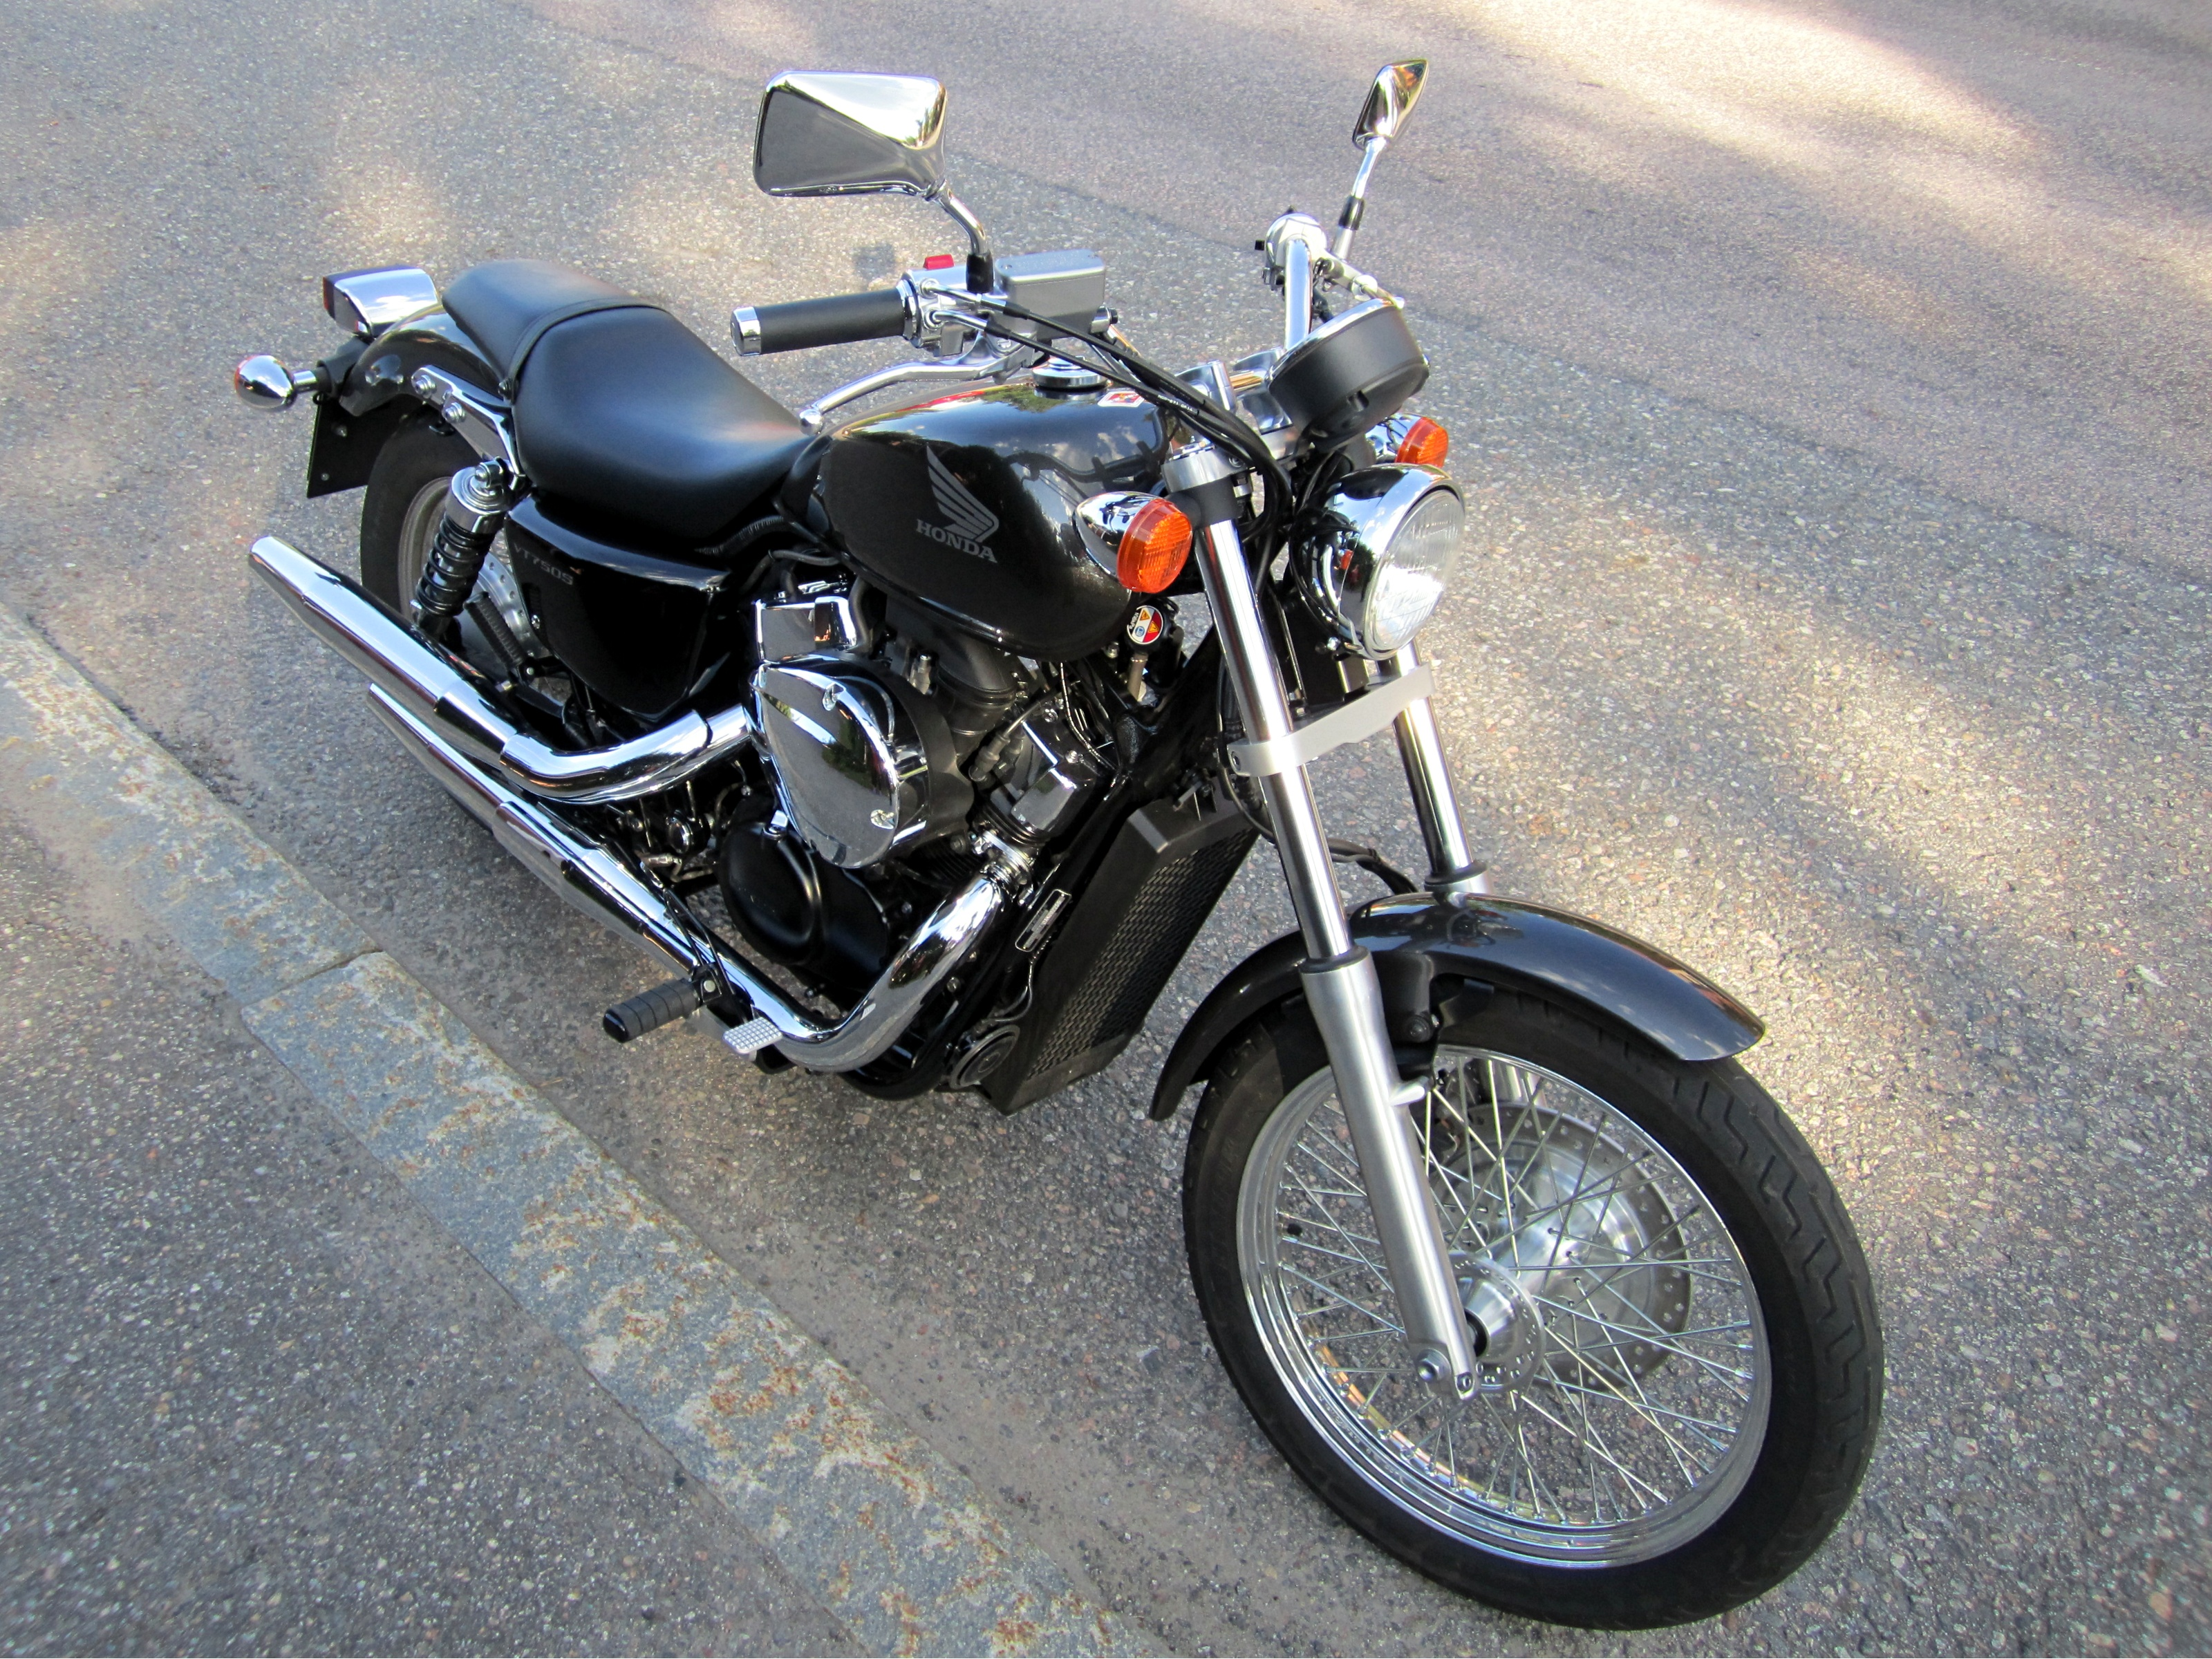 Honda Shadow Vt 700 Schematic Electrical Wiring Diagrams Vt750 Diagram Vt700 Well Detailed U2022 Spirit 750